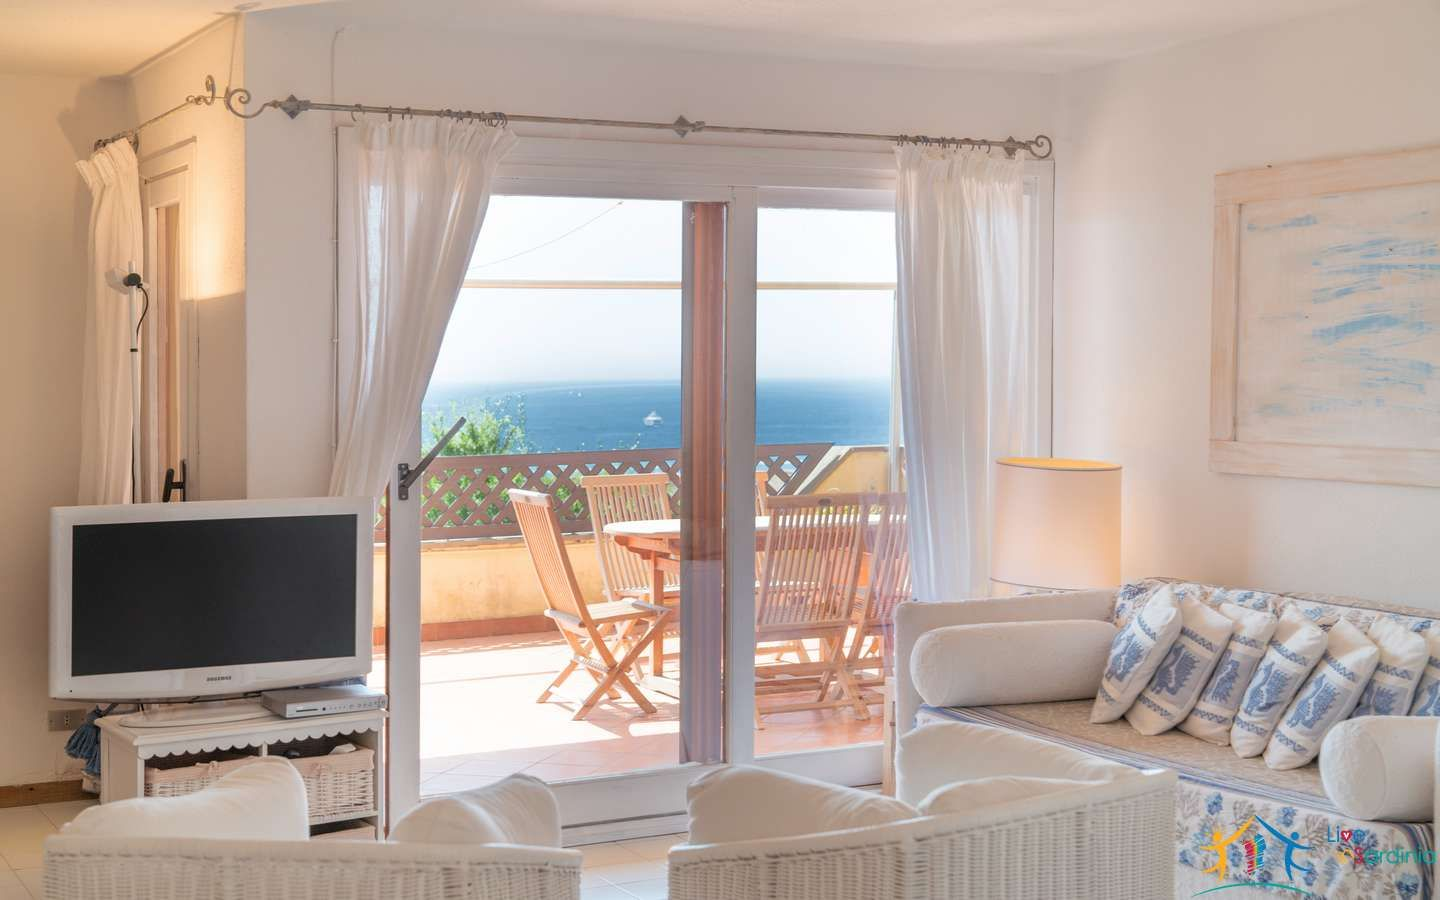 Sea view apartaments for sale in the Italian island of